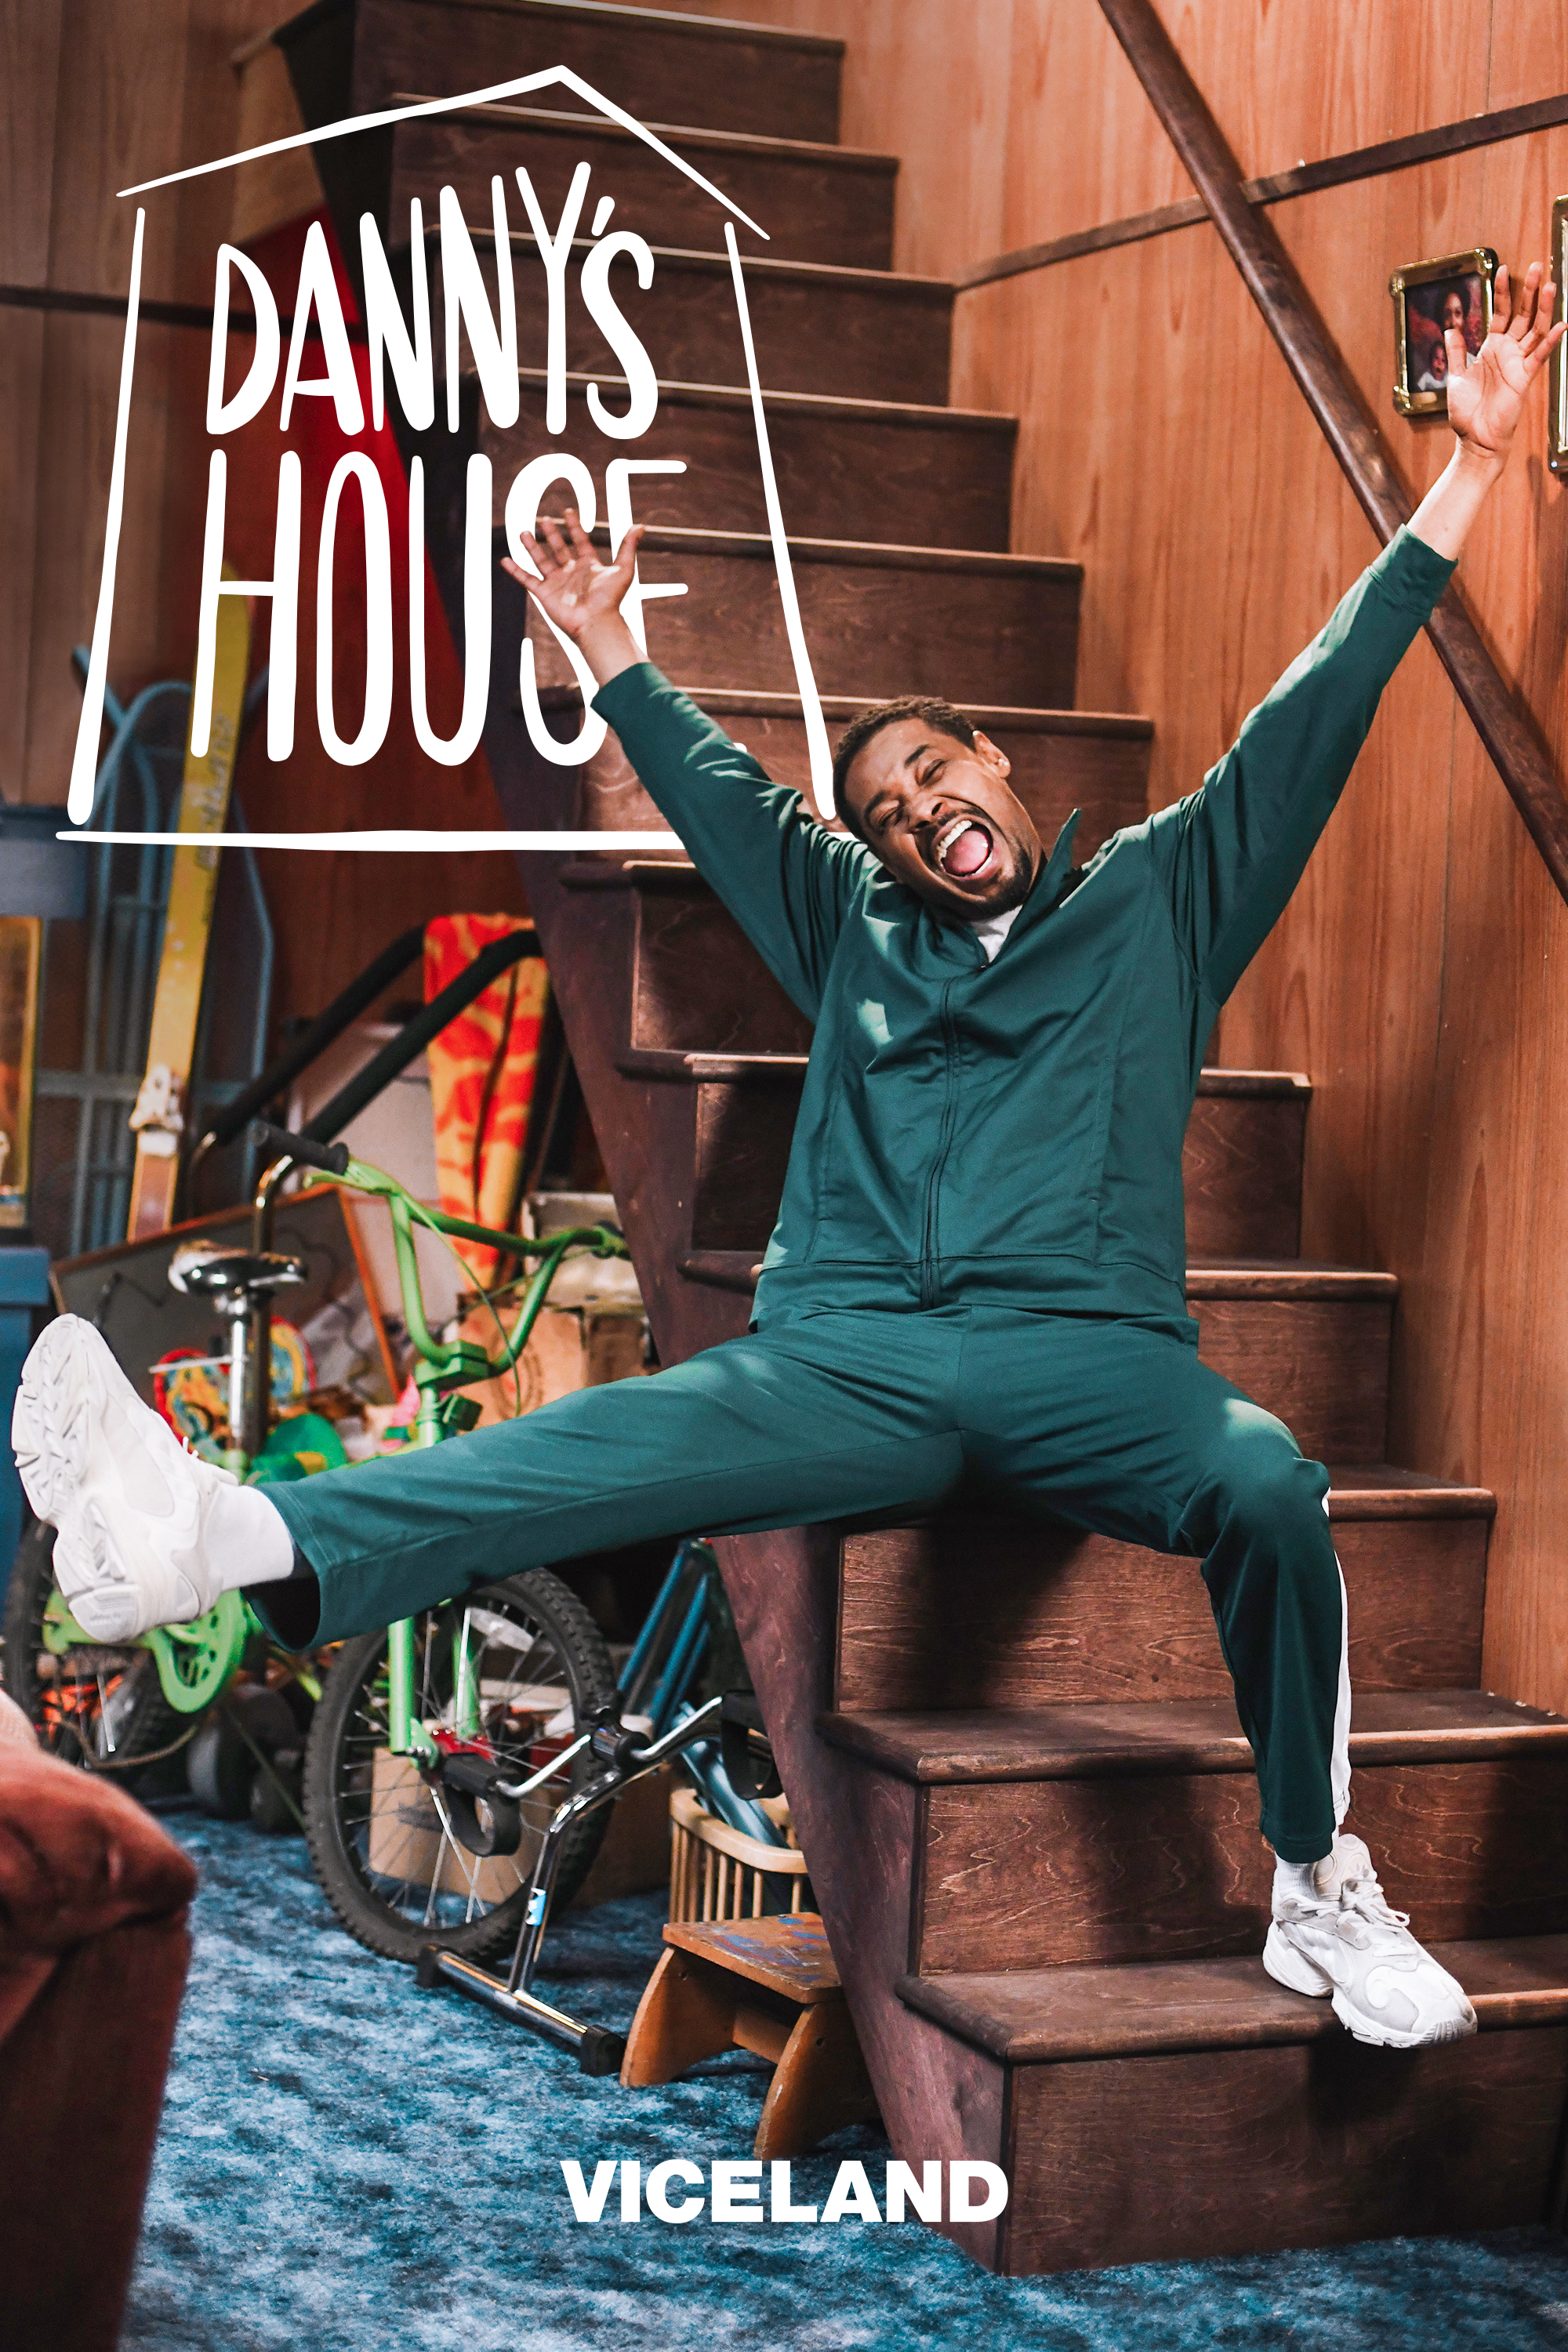 Danny's House - VICELAND